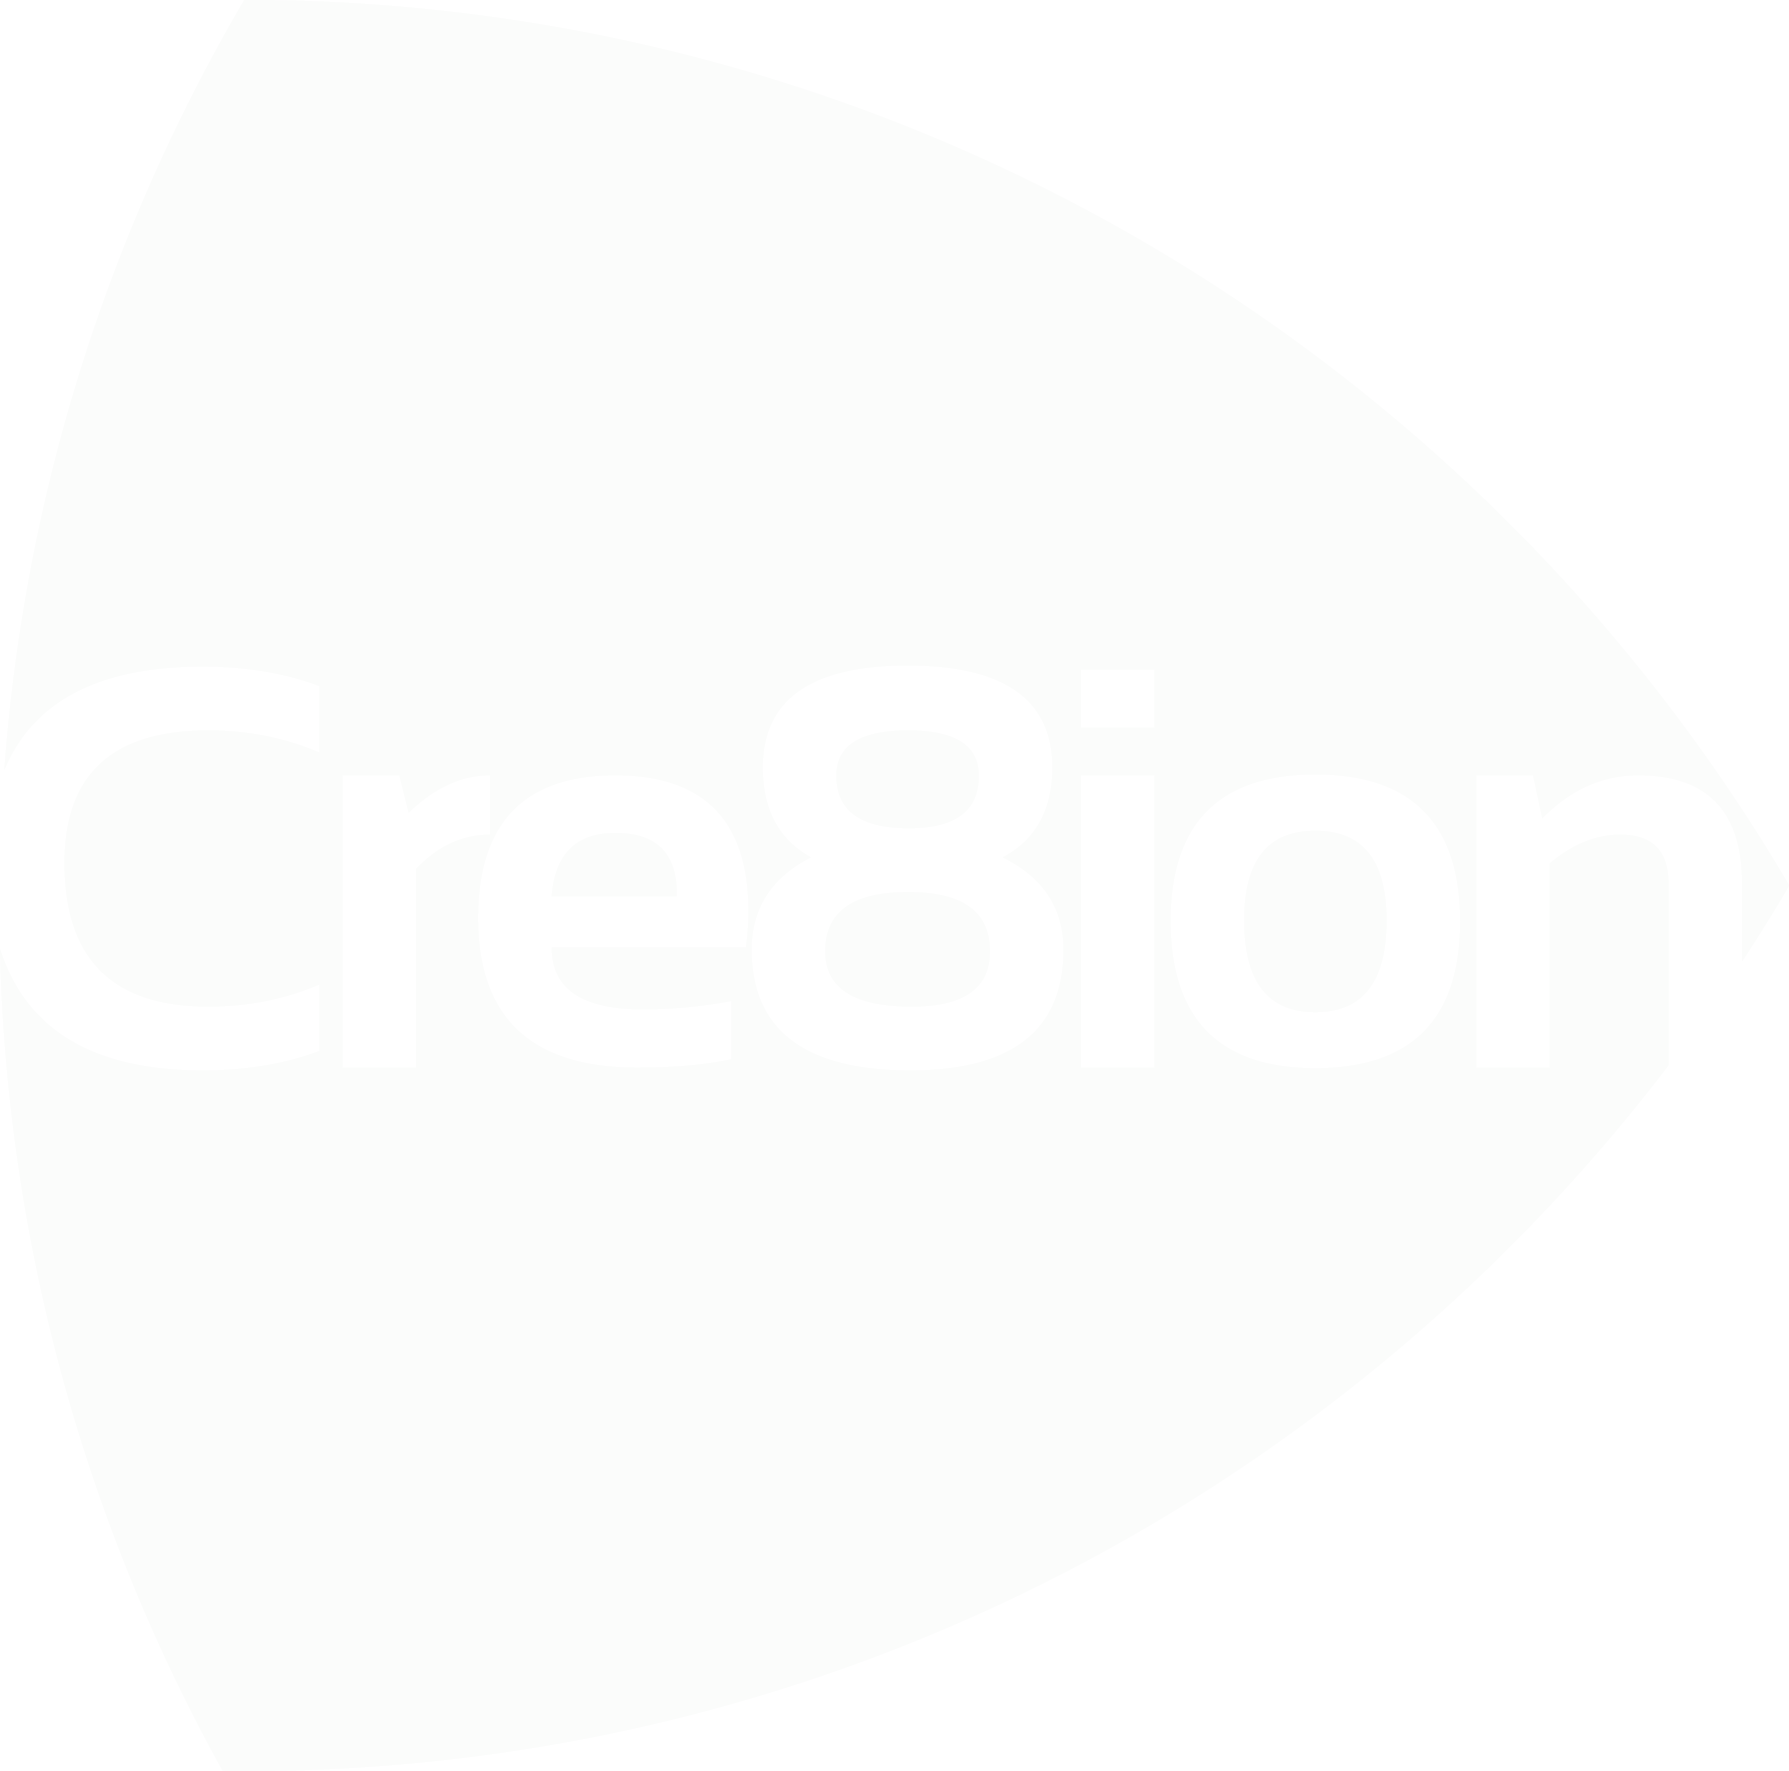 Cre8ion – What's Your Story?